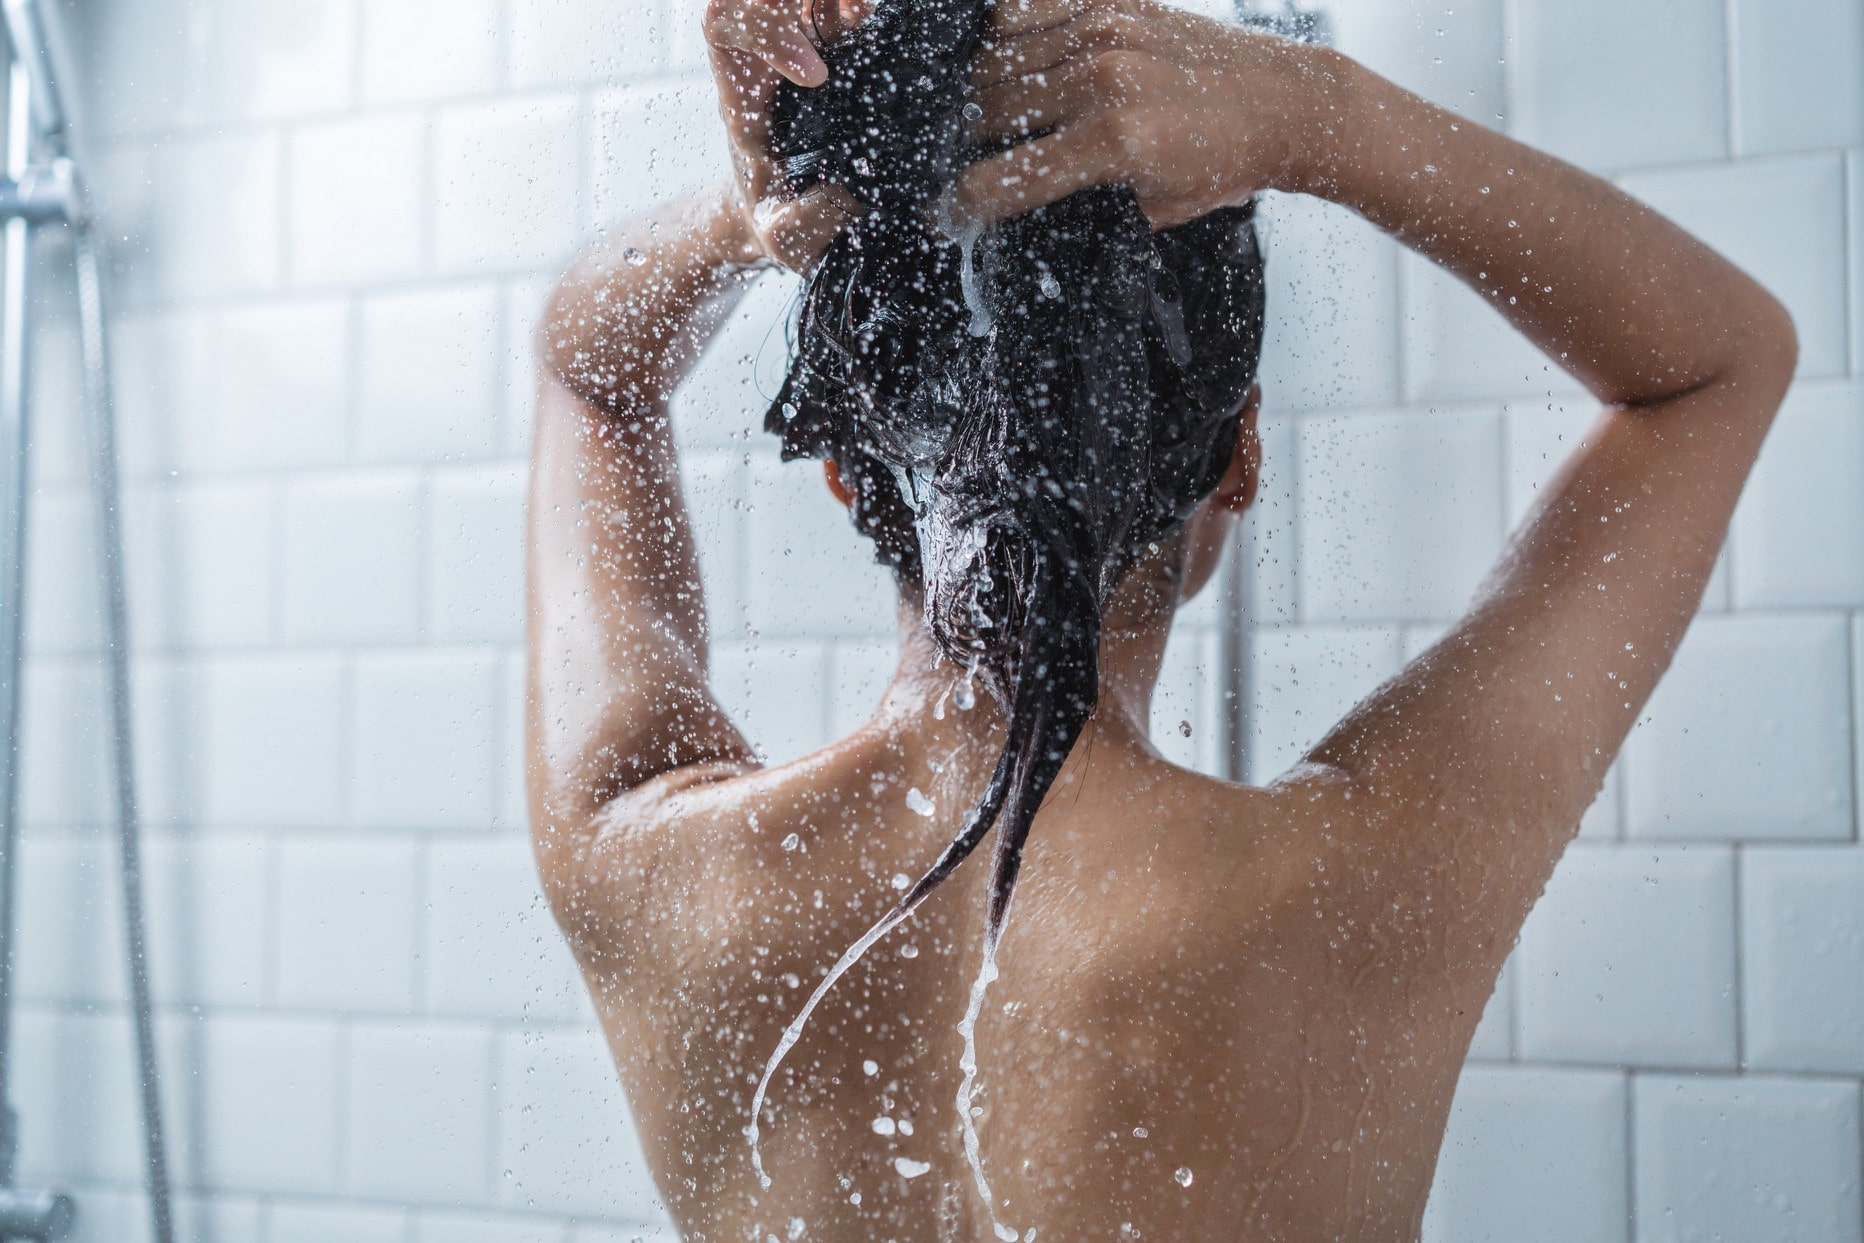 the back of someones back and head in the shower, washing their hair, with a tiled white background.